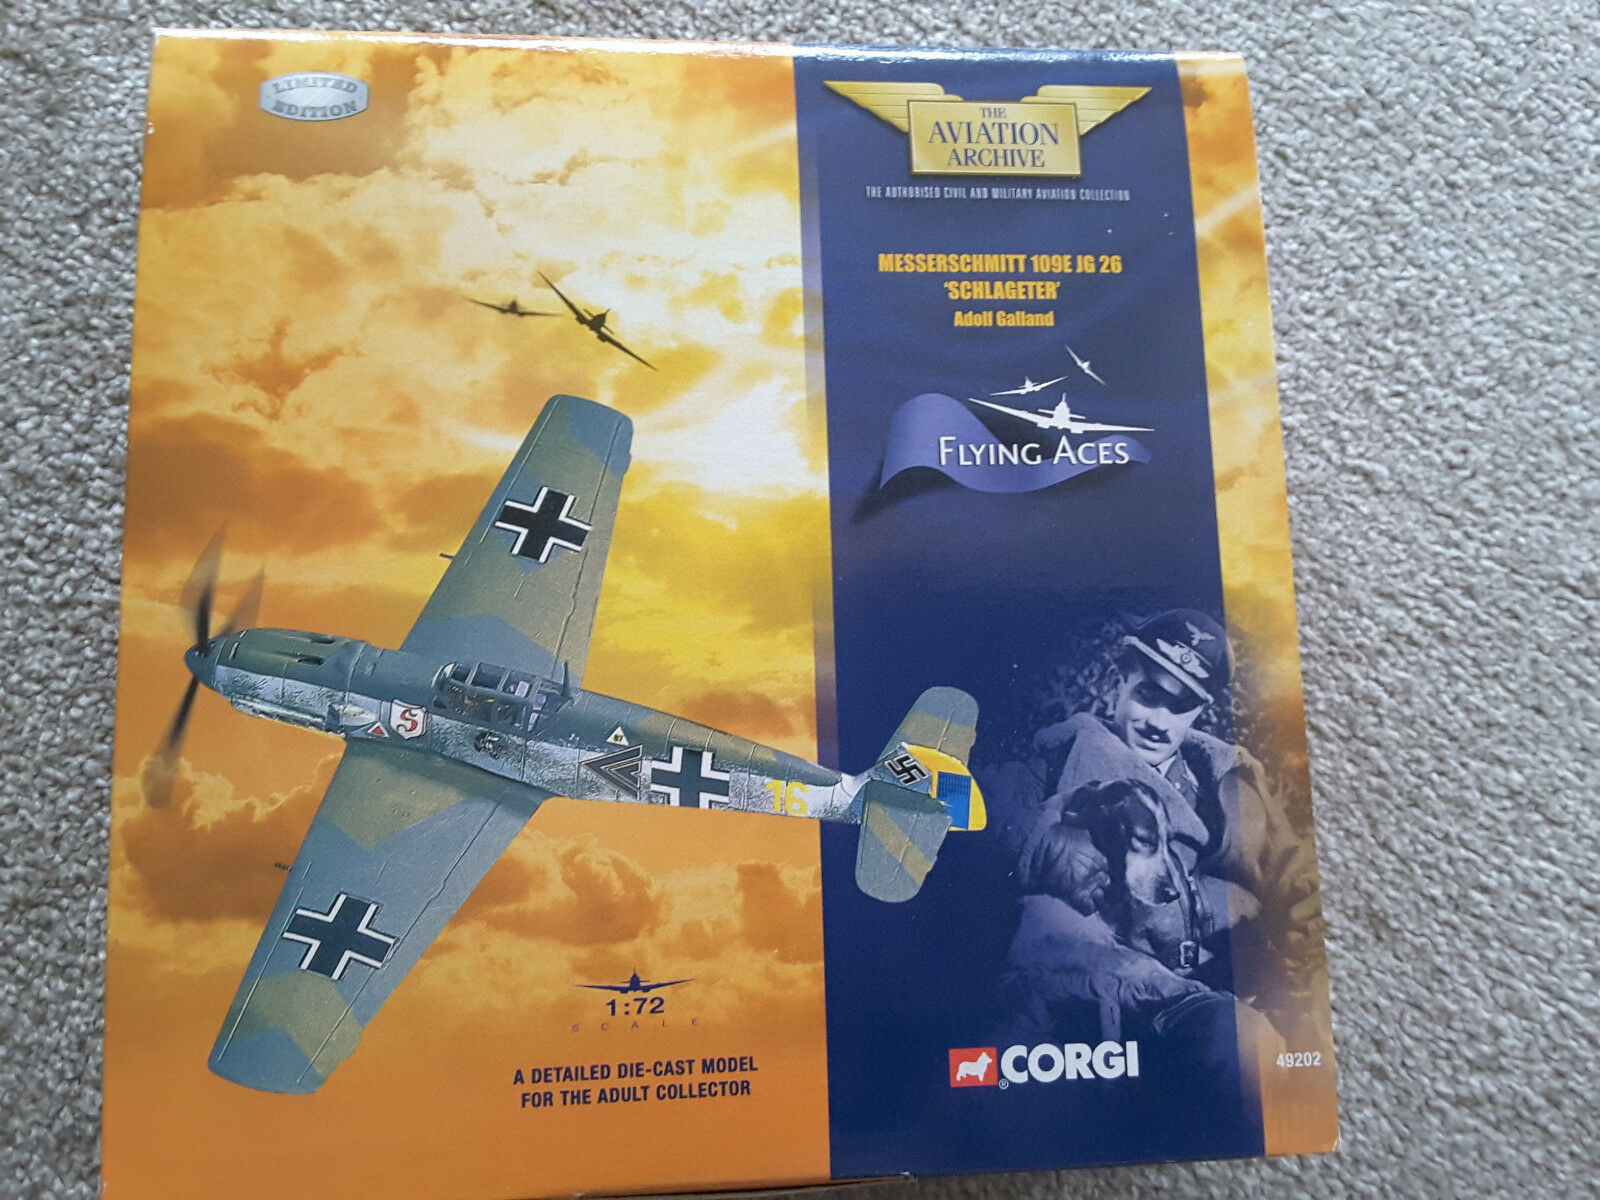 Corgi Model, Messerschmitt 109E JG 26 'Schlageter' Adolf Galland